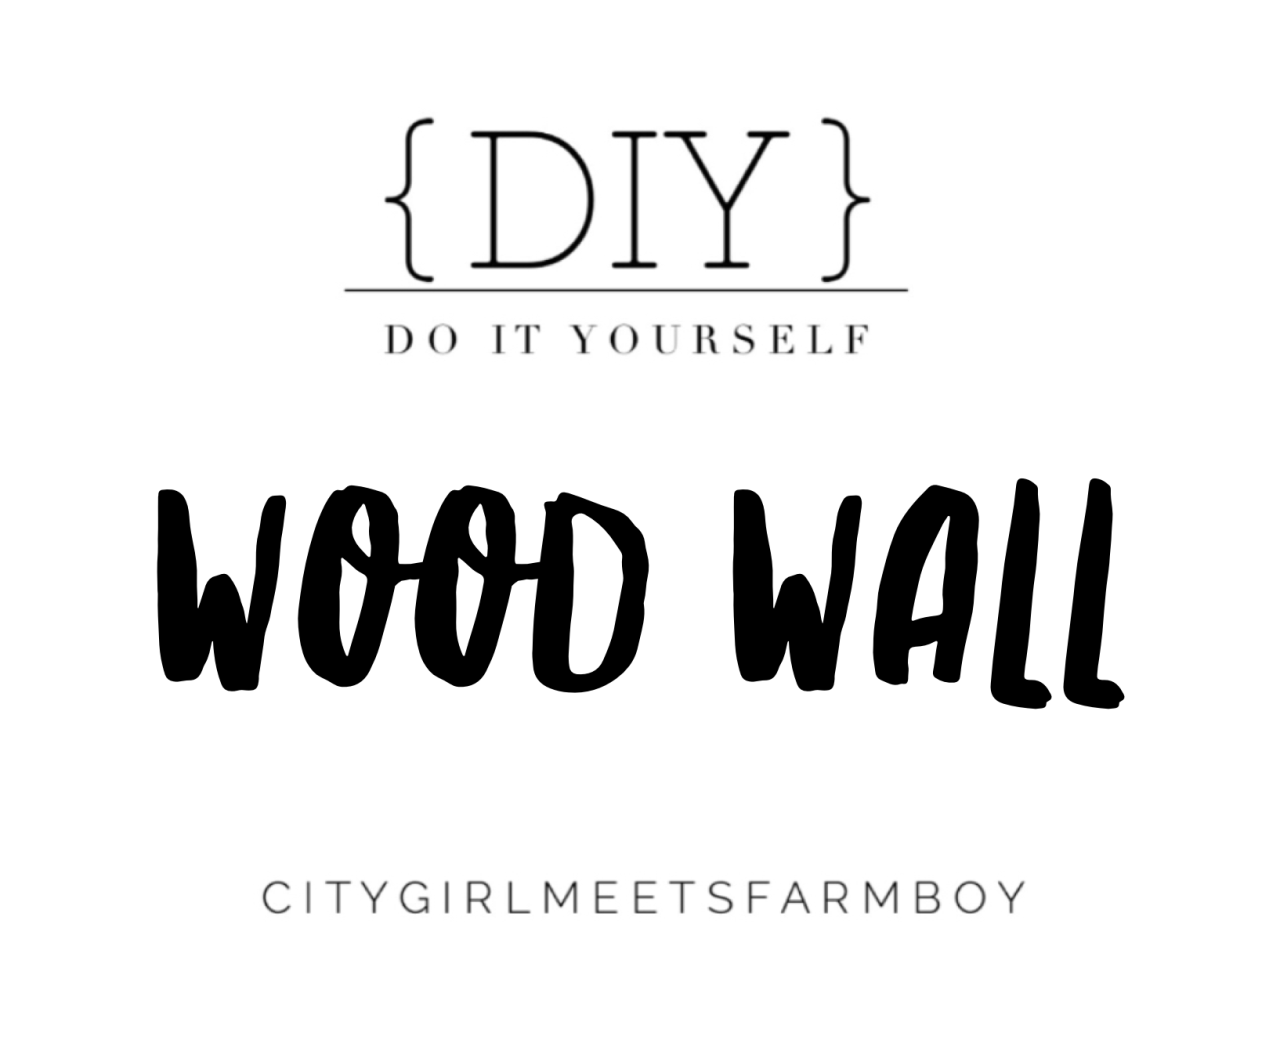 Do it yourself wood wall eek i am geeking out at my newest project like hardcore i love it i love it i love it did i mention that i love it solutioingenieria Image collections